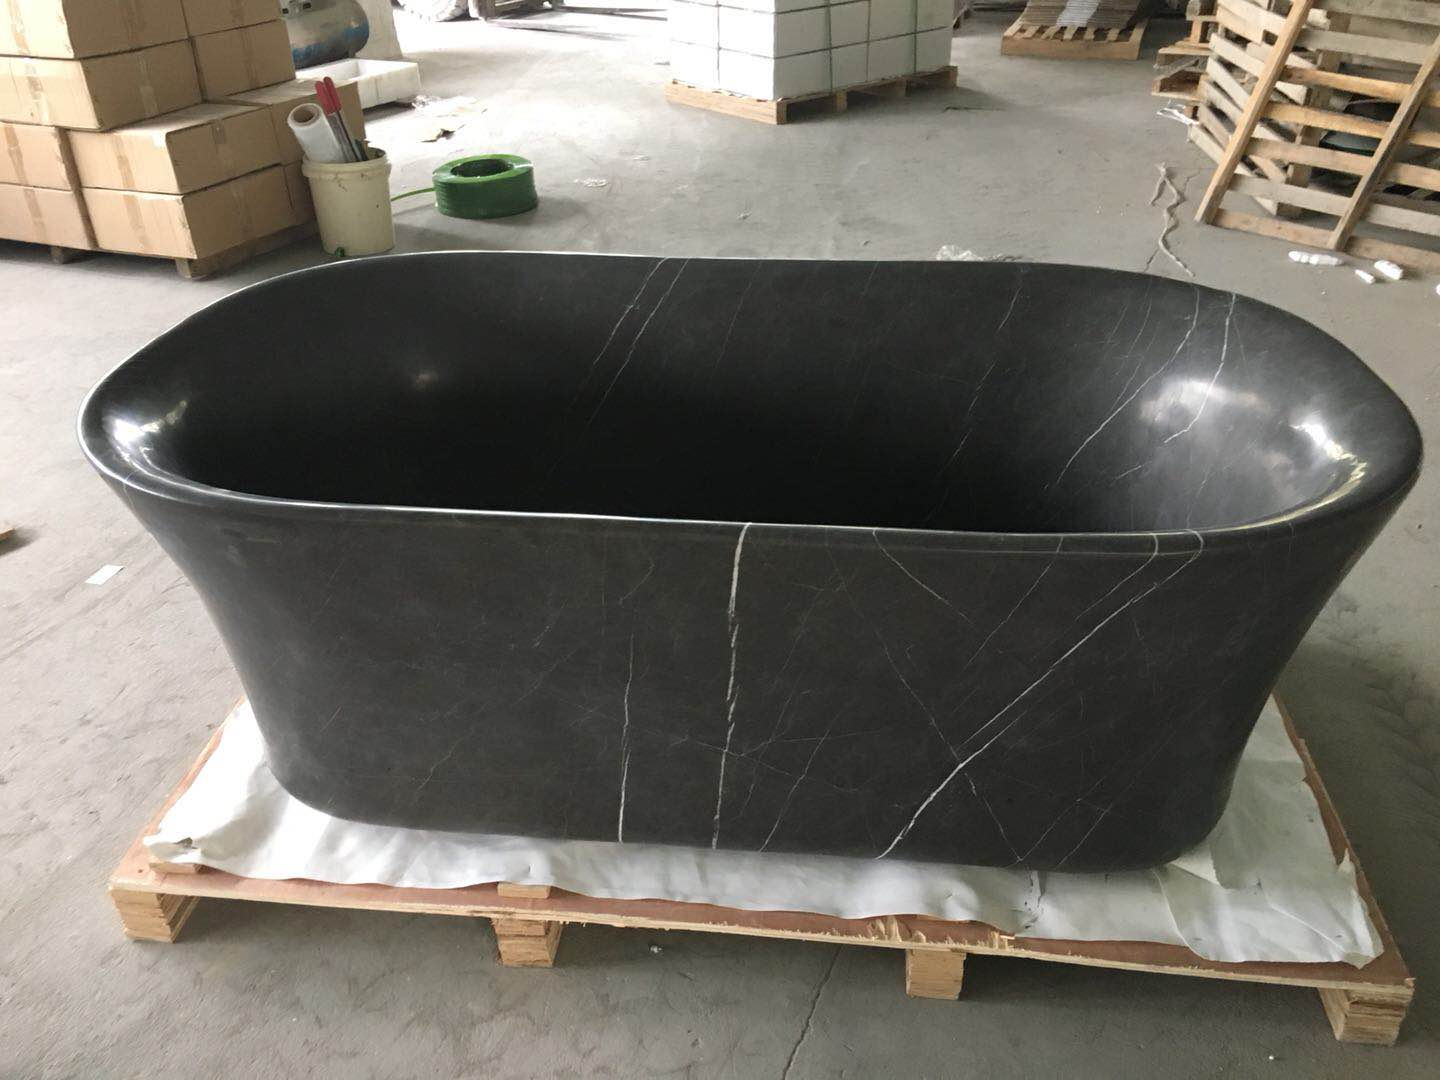 Is the marble bathtub popluar in your country?